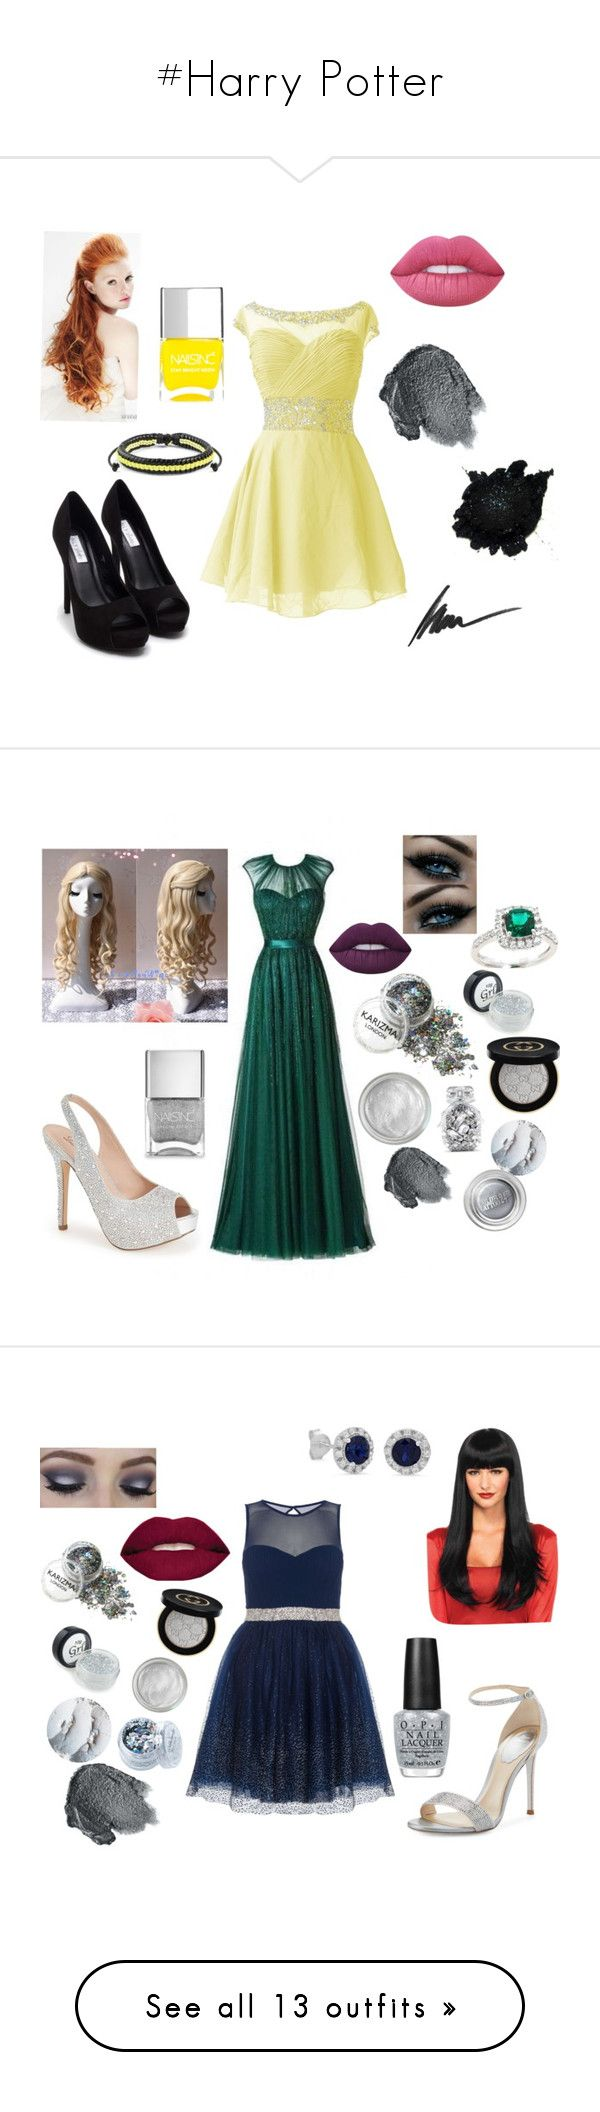 """""""#Harry Potter"""" by turqoiseninja ❤ liked on Polyvore featuring Nly Shoes, Lime Crime, West Coast Jewelry, Anna Sui, Nails Inc., Max Factor, Lauren Lorraine, Gucci, Silver Lining and Victoria's Secret"""